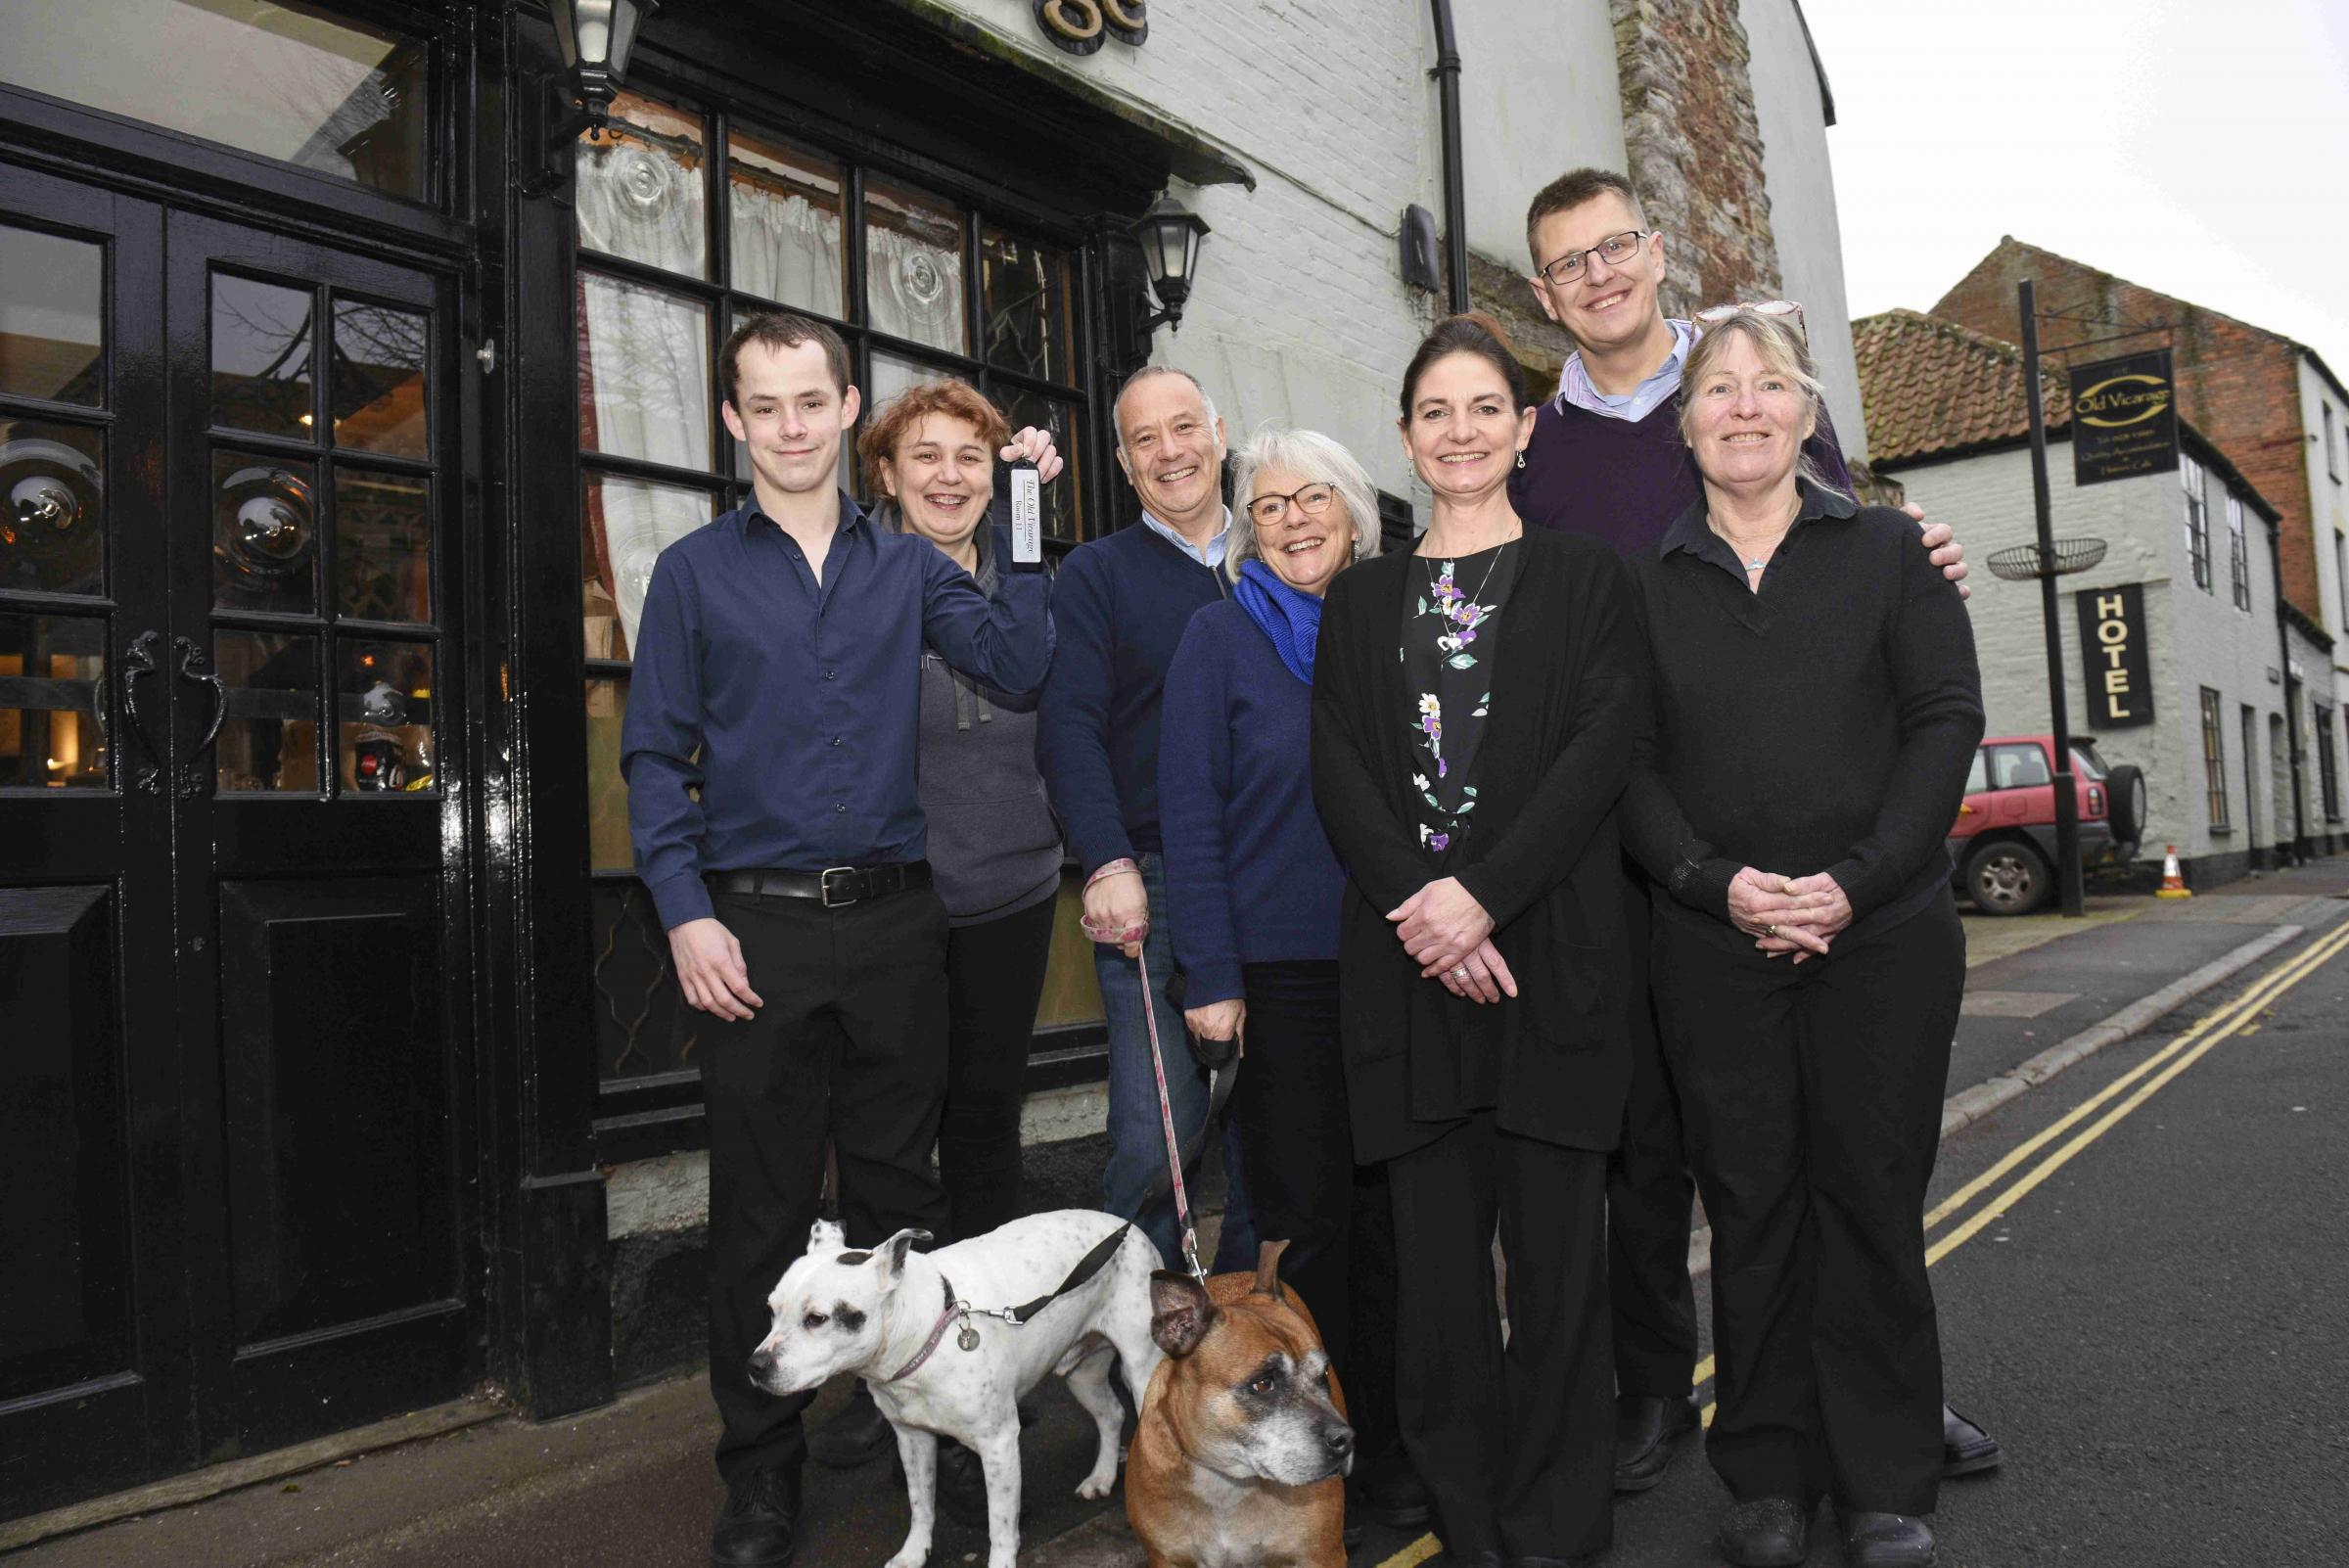 FRESH START: Husband and wife team Peter Starling and Candida Leaver (centre) with their team outside The Old Vicarage